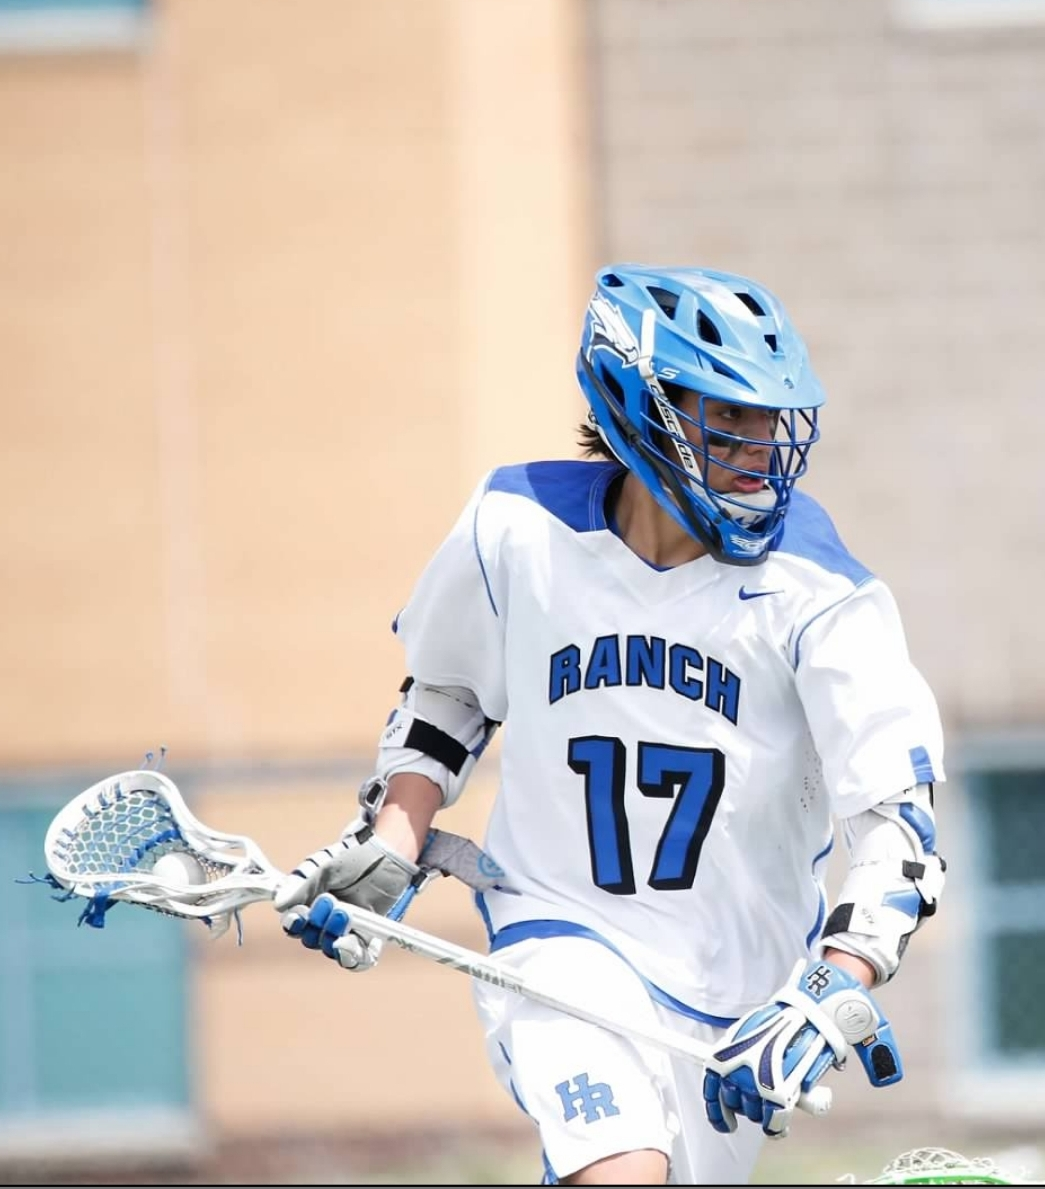 Ranch Lacrosse Makes It To Final Four